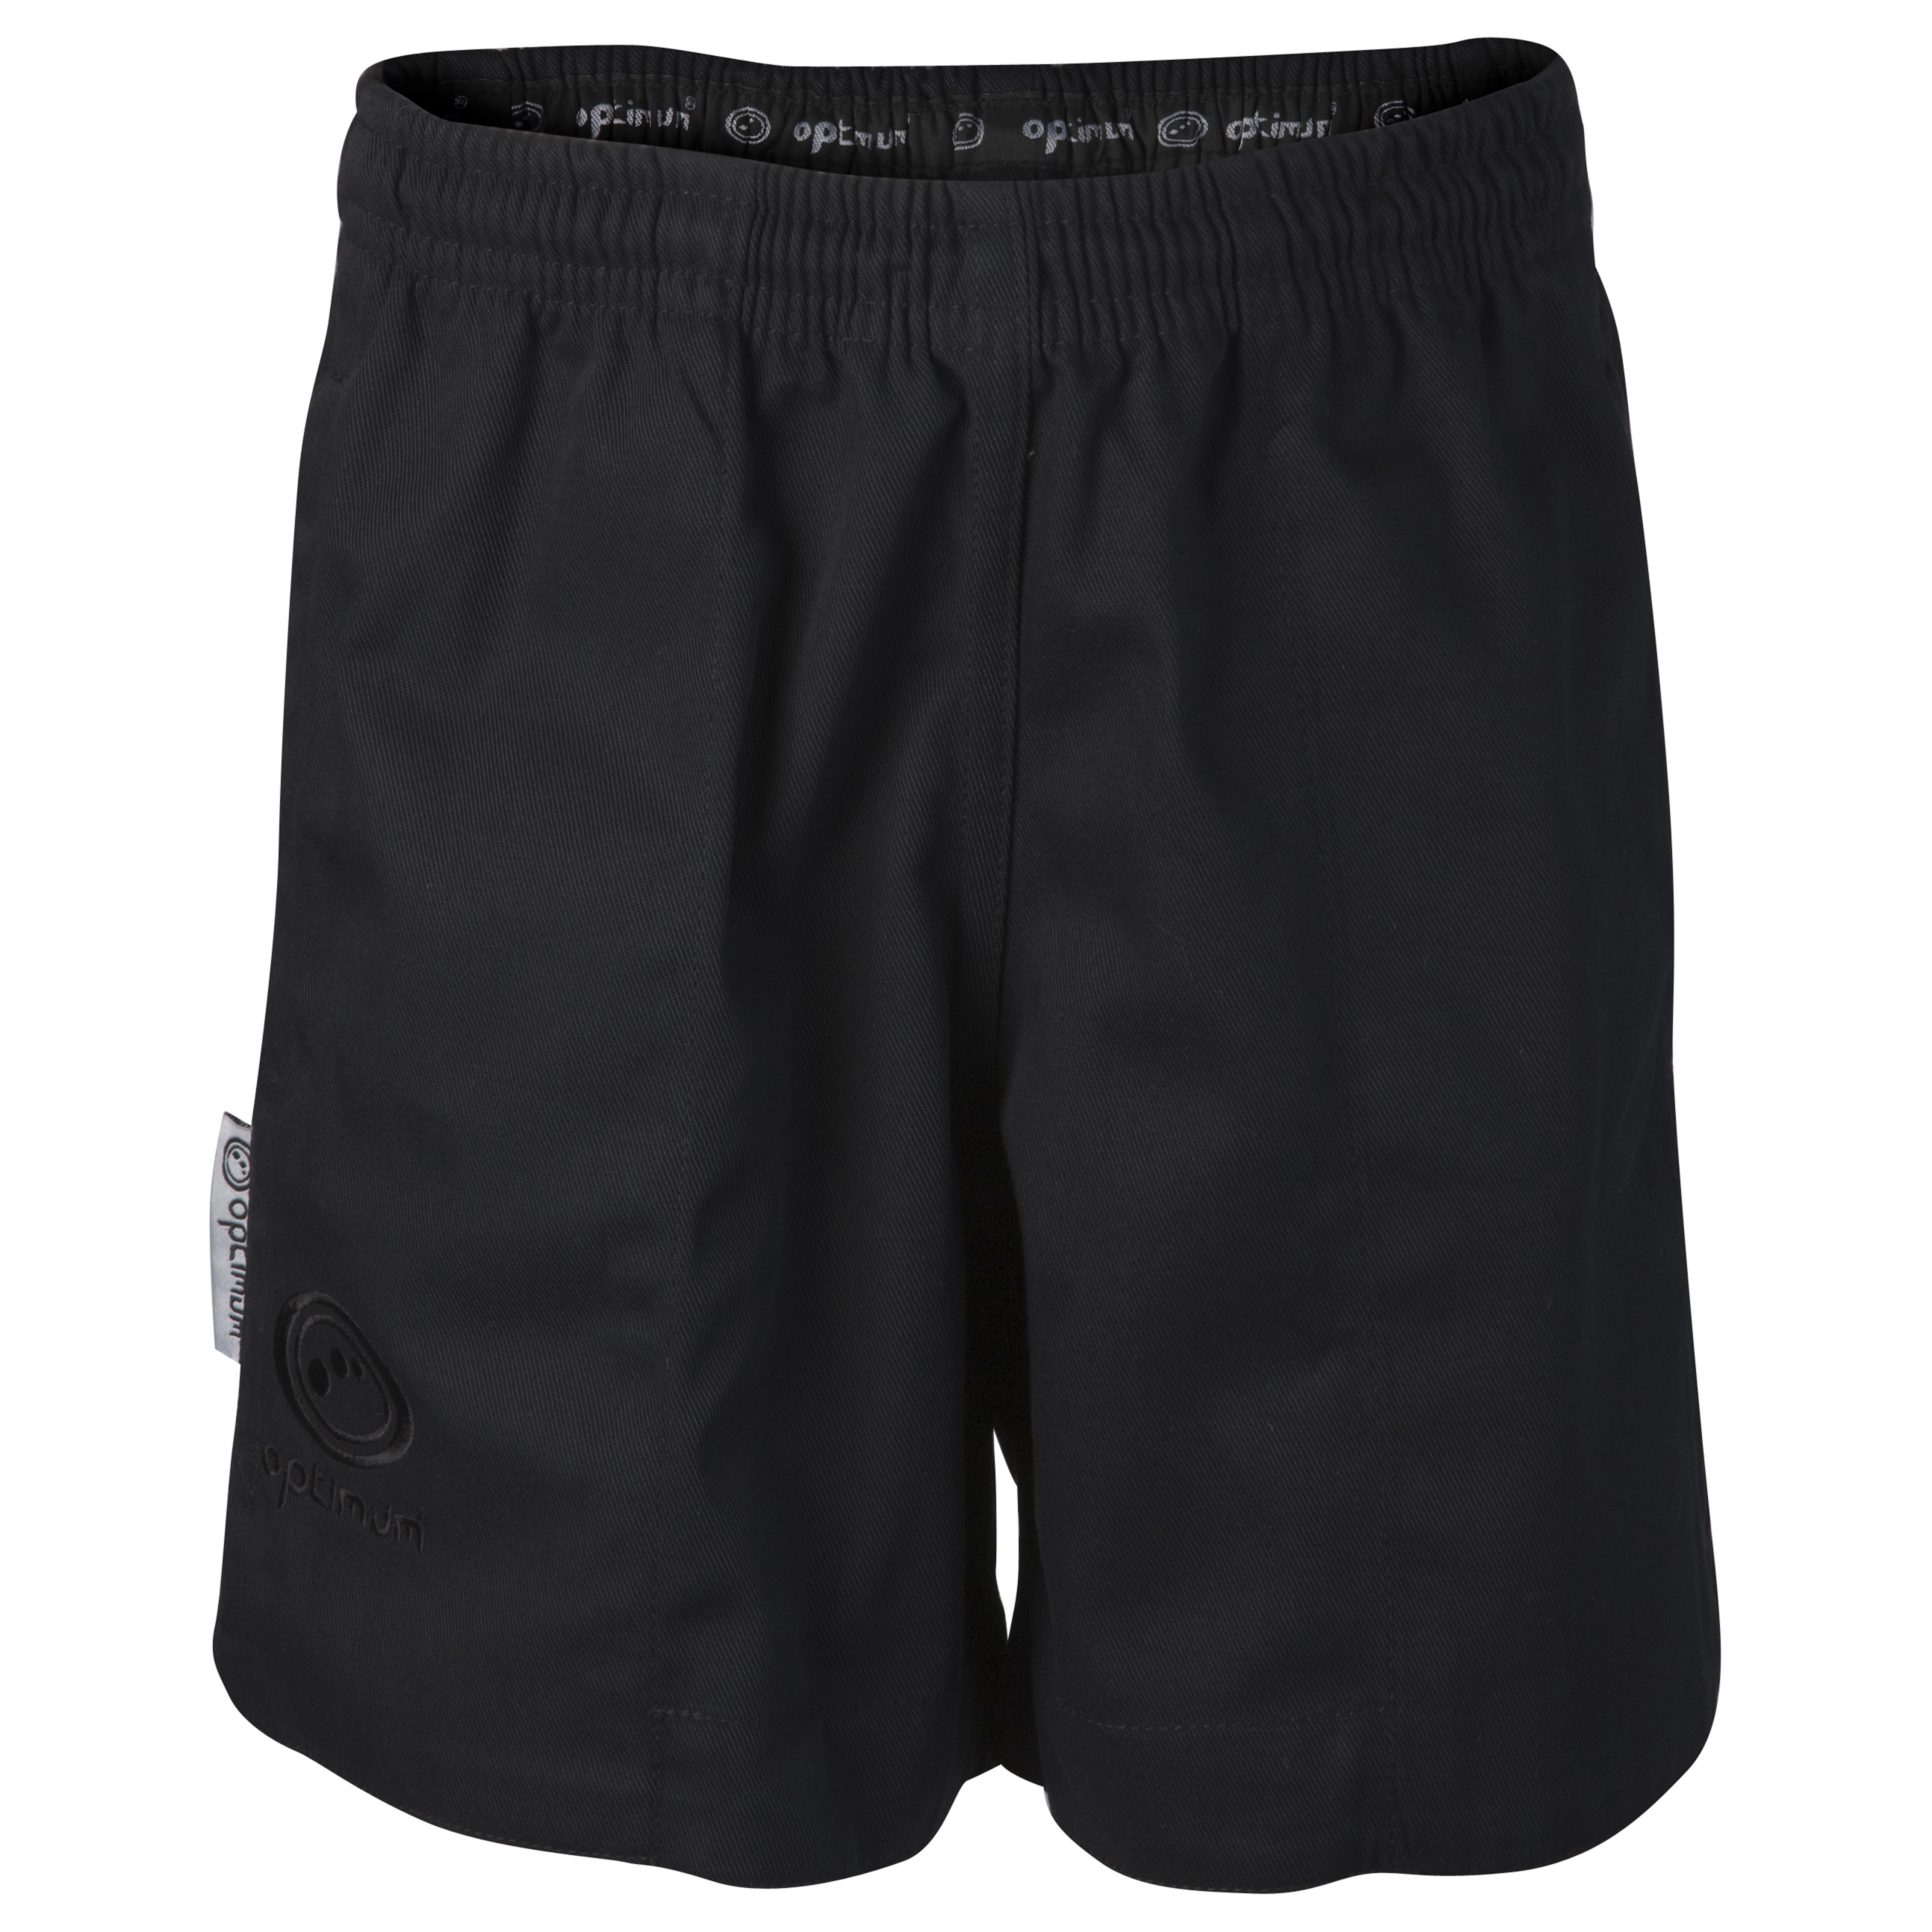 Optimum Auckland Rugby Shorts - Black/Blue - Kids